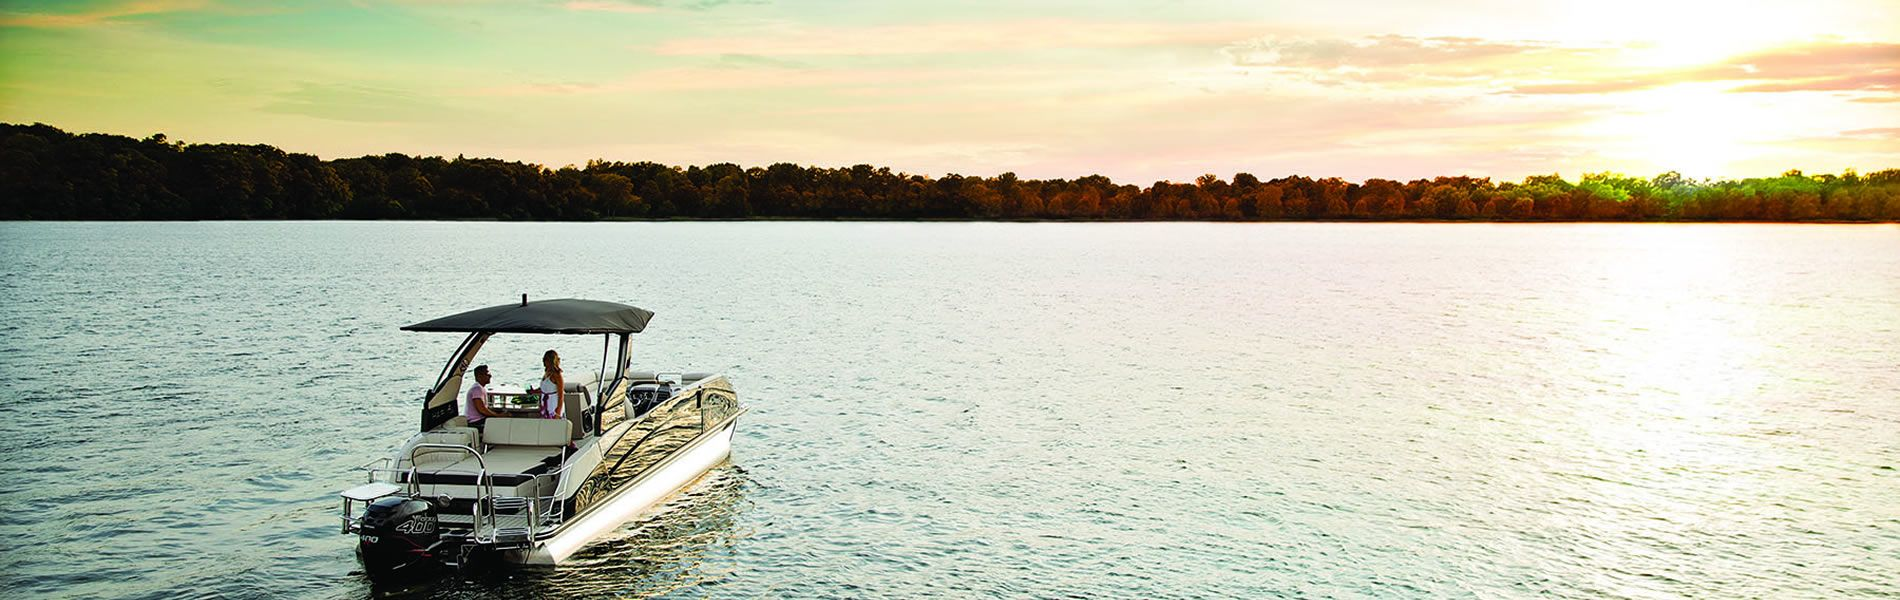 Offer The Right Boat Insurance At The Right Price